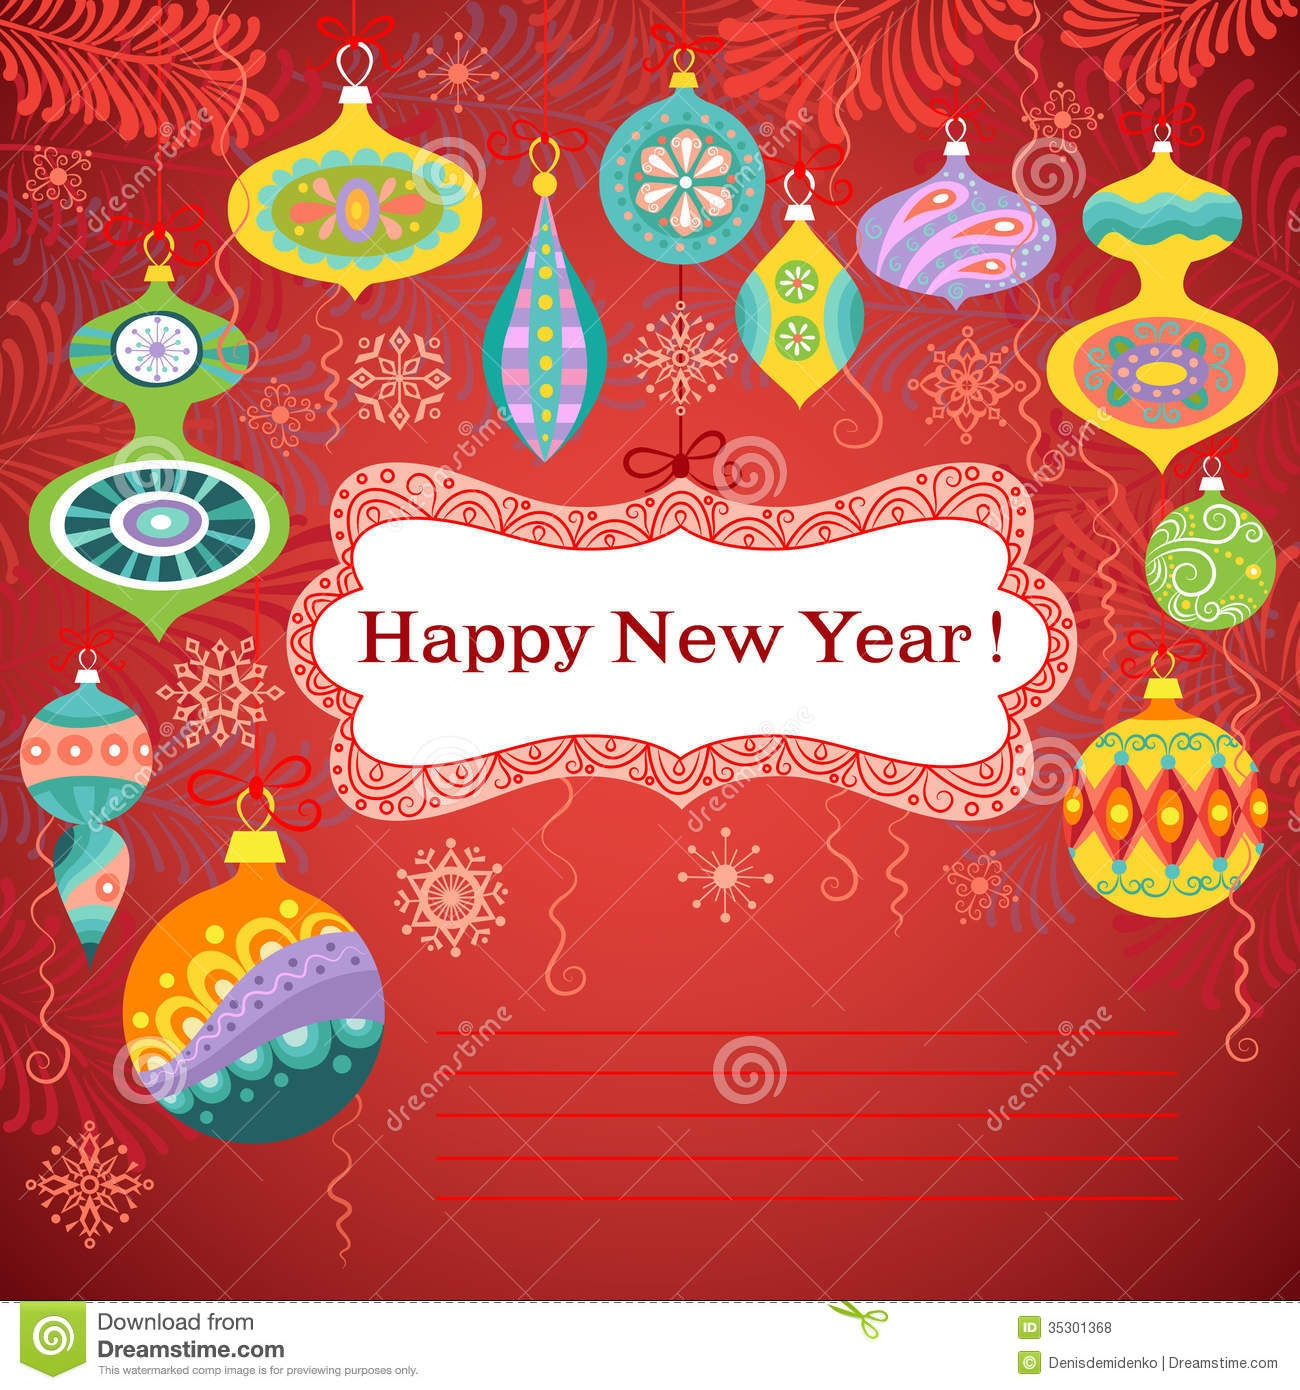 Happy New Year Card Stock Vector. Illustration Of Banner - 35301368 - Free Printable Happy New Year Cards